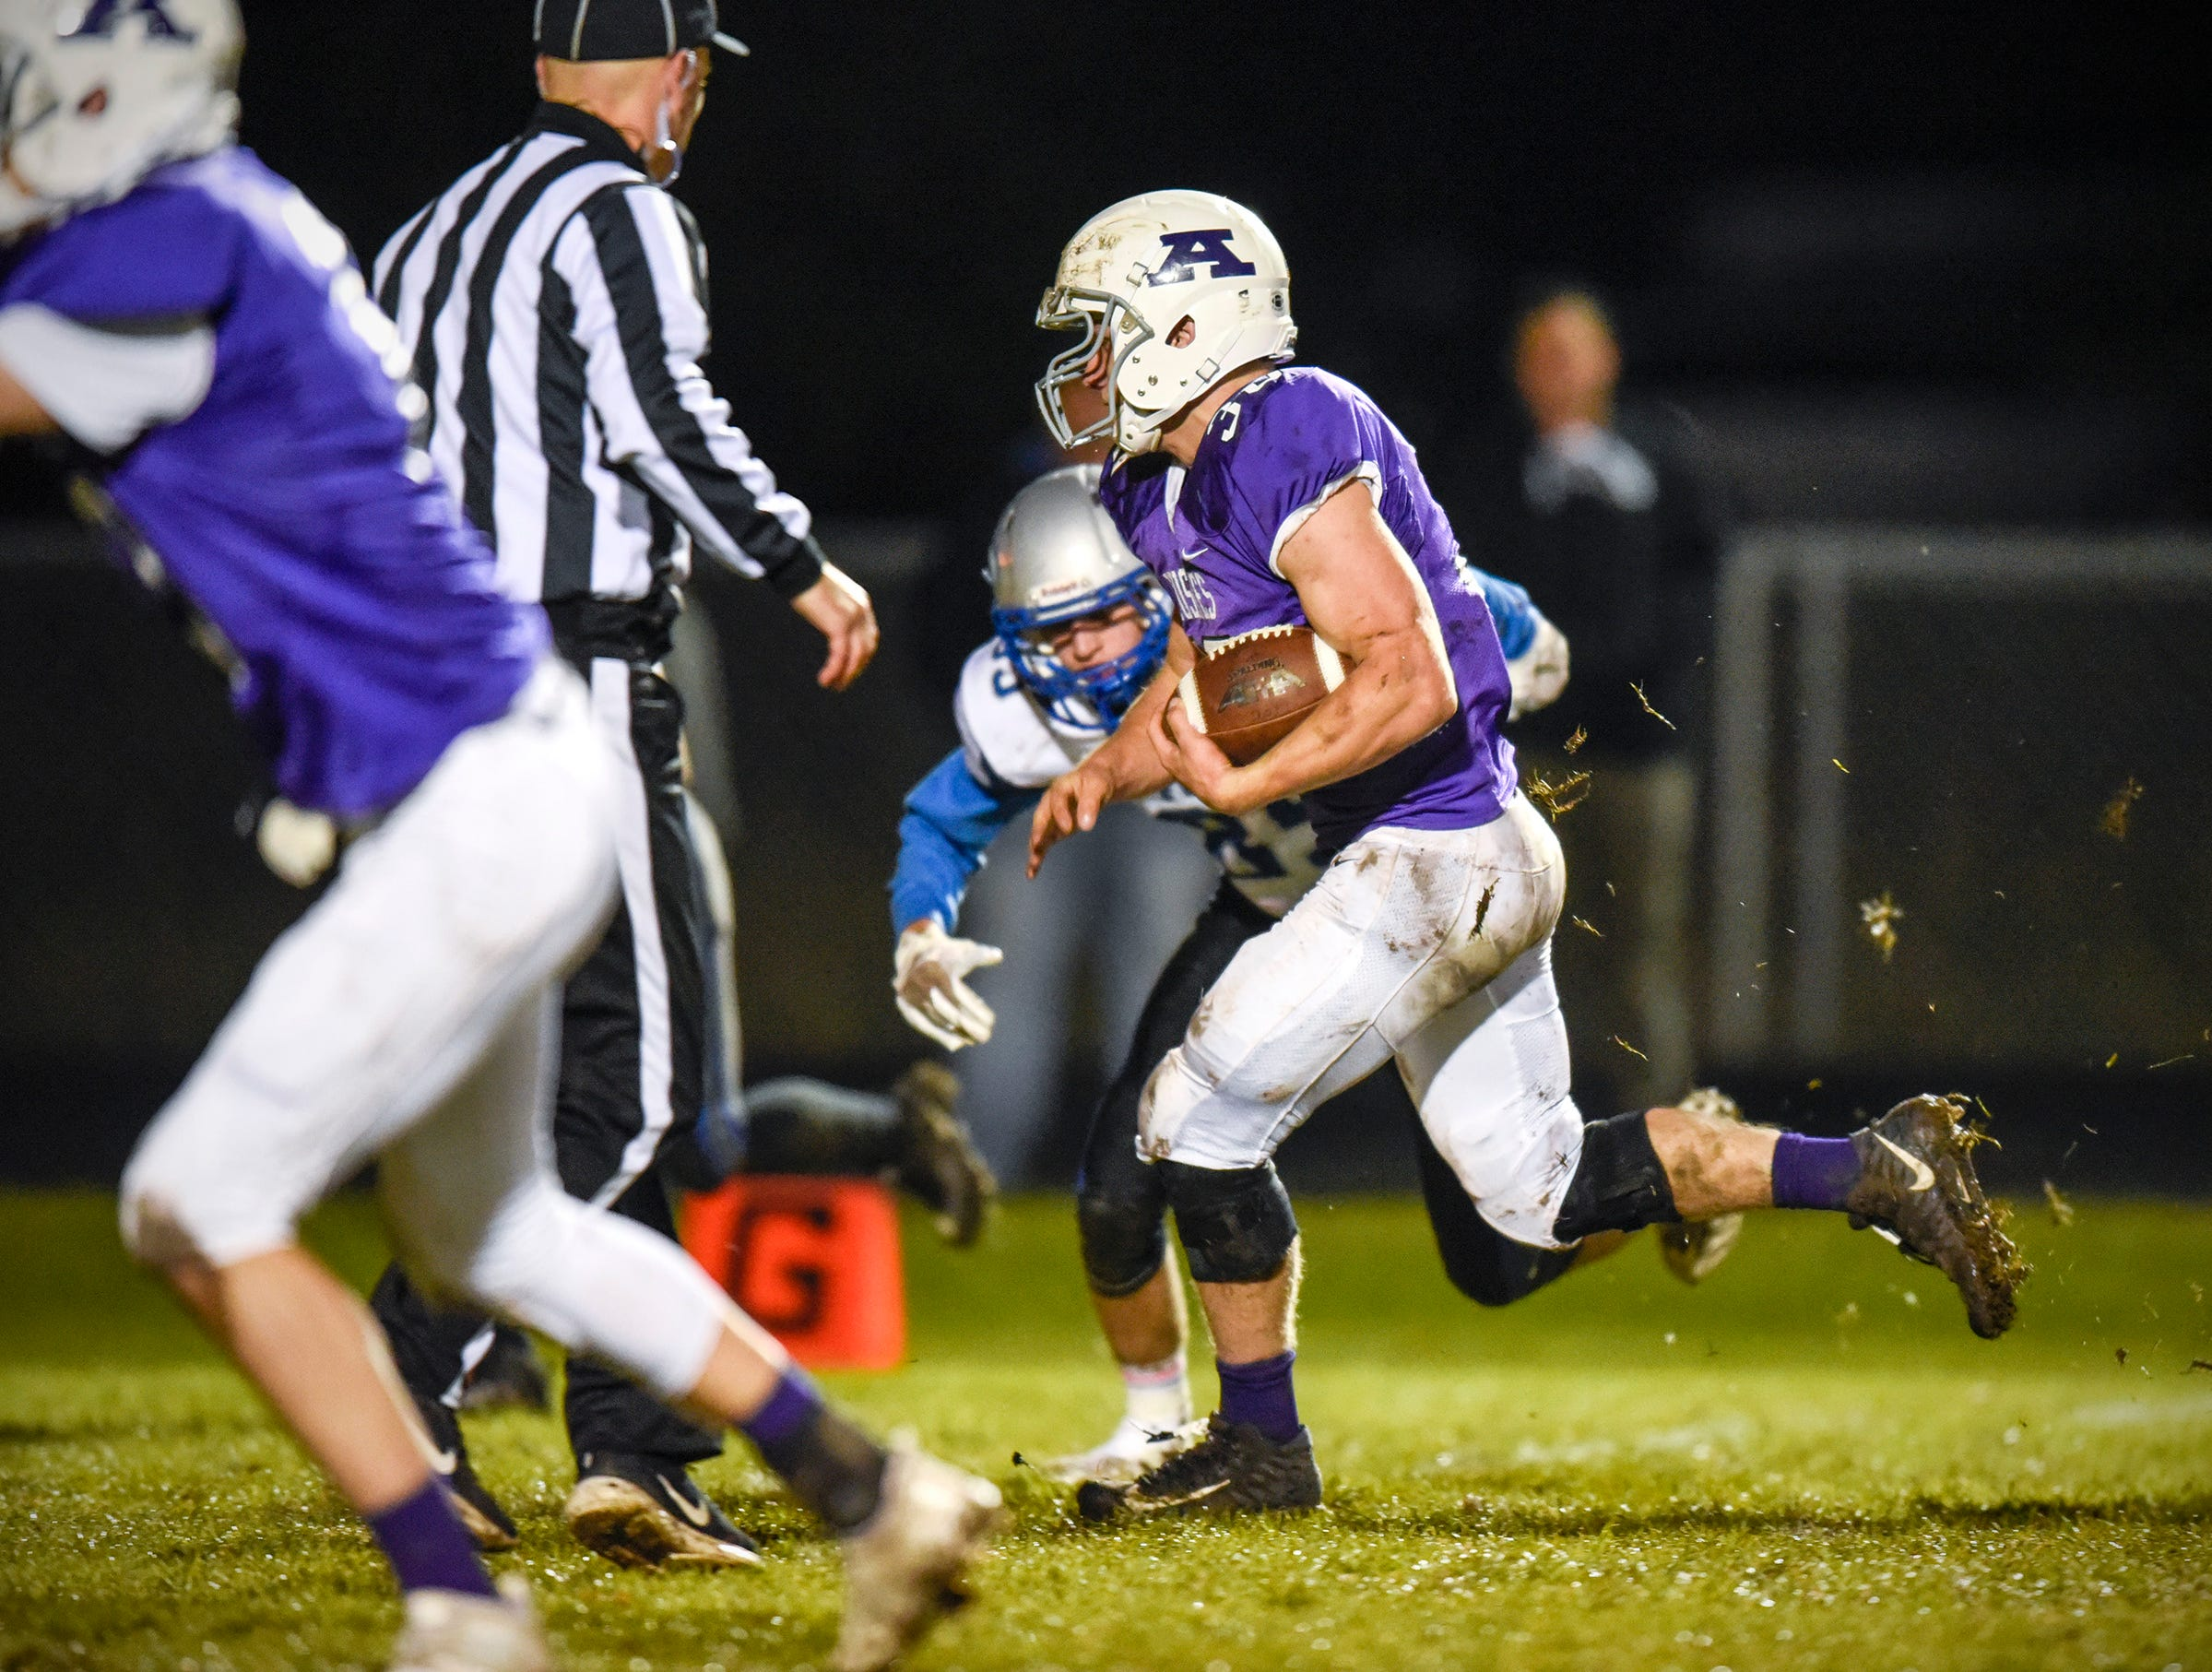 Albany's Gabe Zierden goes in to score against Foley during the first half Friday, Oct. 12, in Albany.